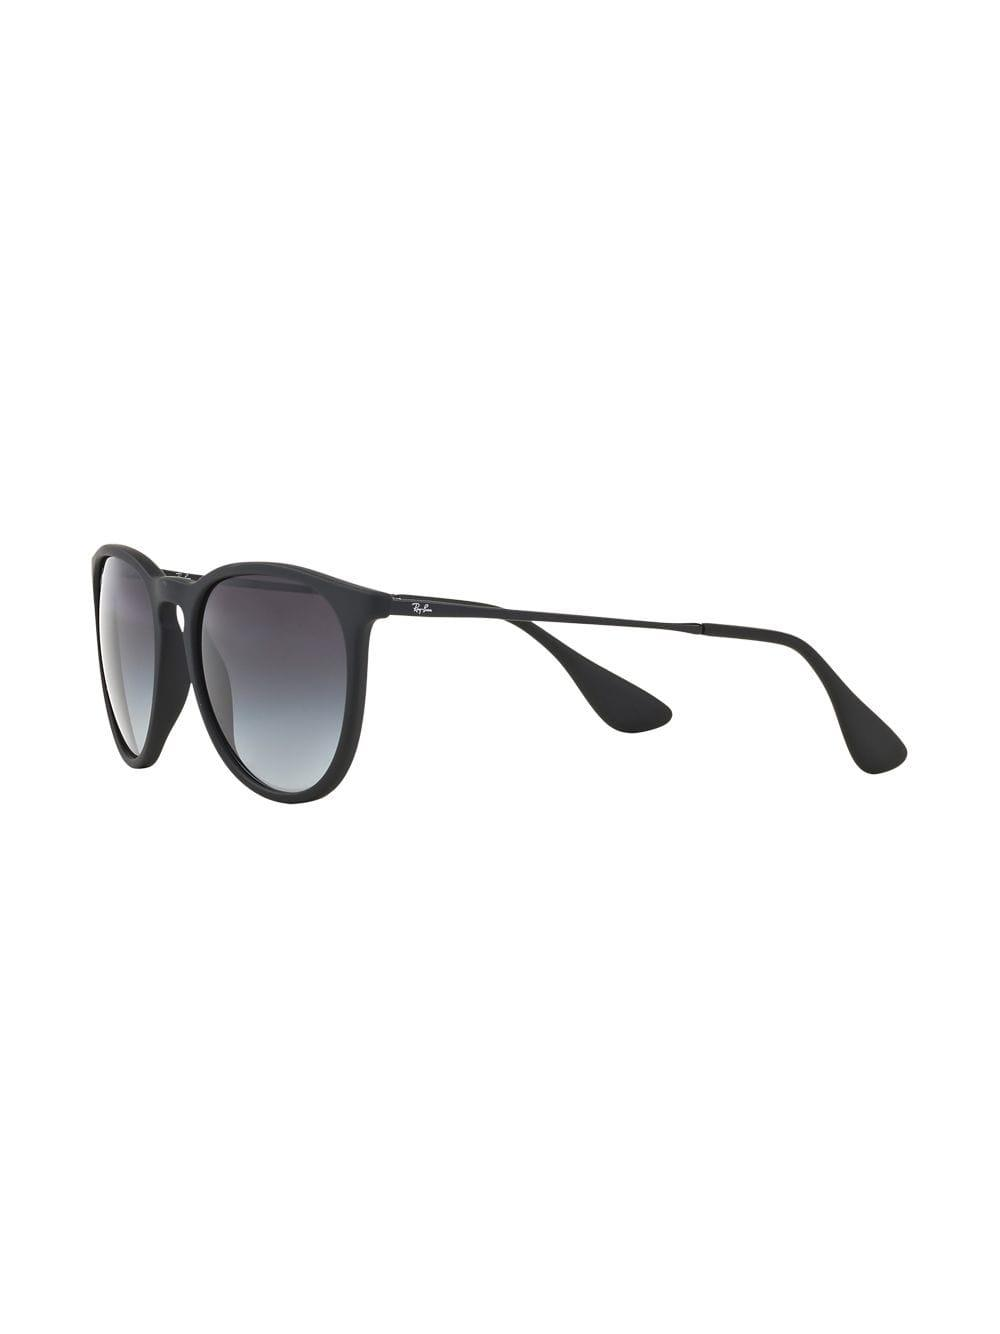 f19dff9e3a6788 Ray-Ban Erika Classic Sunglasses in Black - Lyst